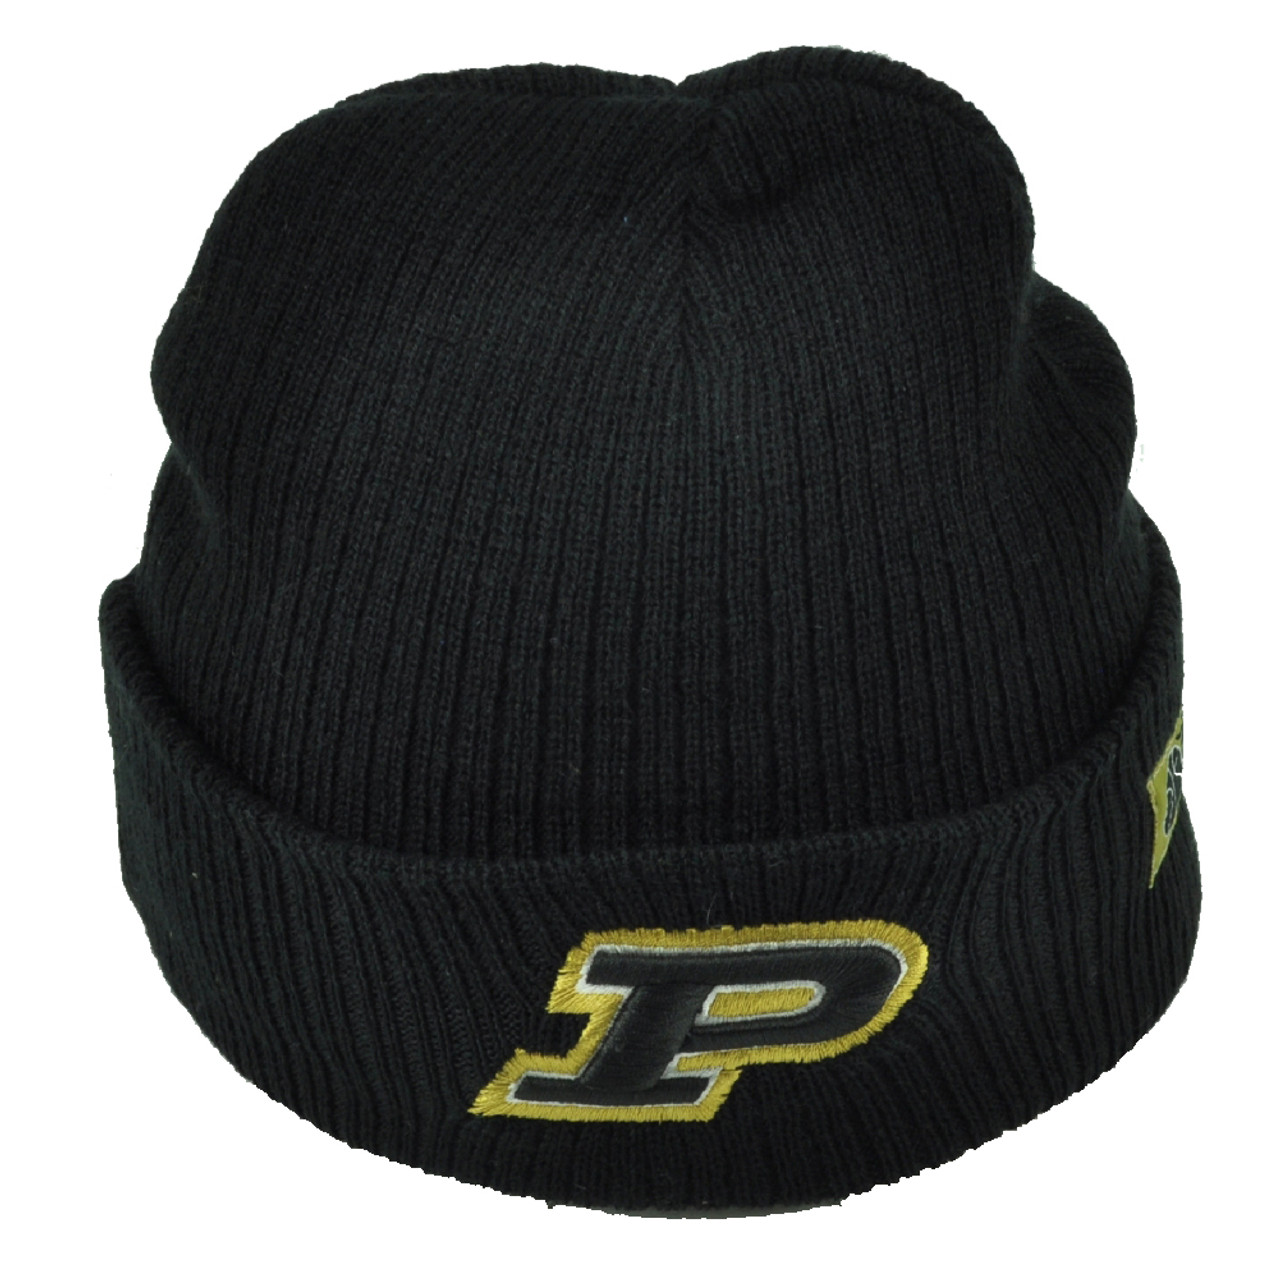 296b12ce4 NCAA Purdue Boilermakers Black Cuffed Knit Beanie Basketball Toque Acrylic